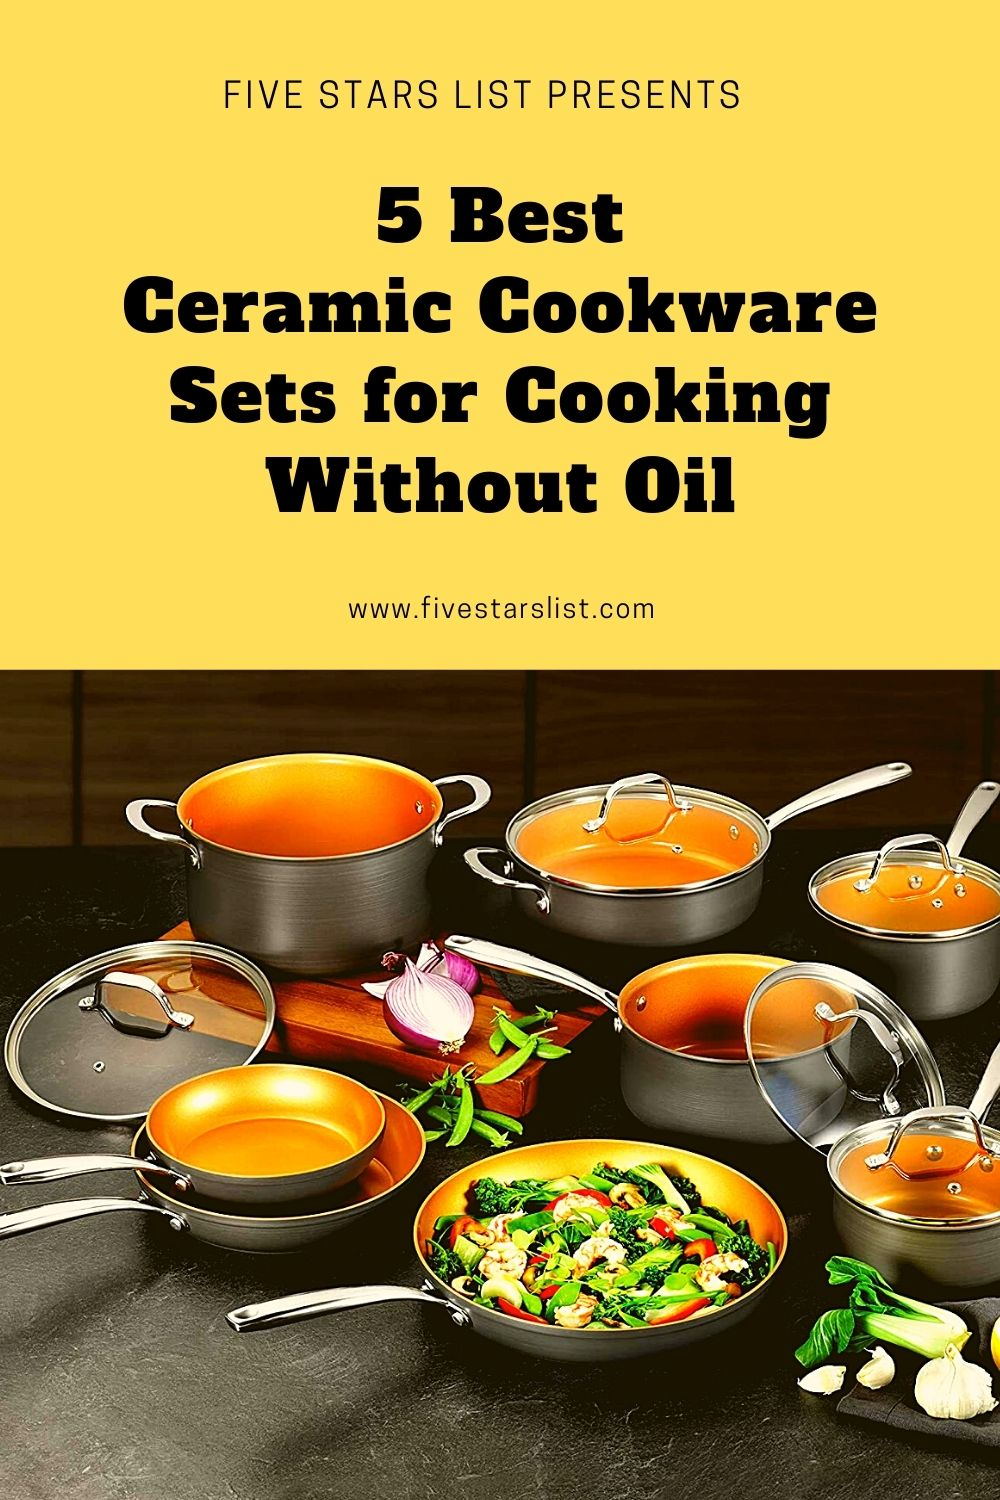 5 Best Ceramic Cookware Sets for Cooking Without Oil